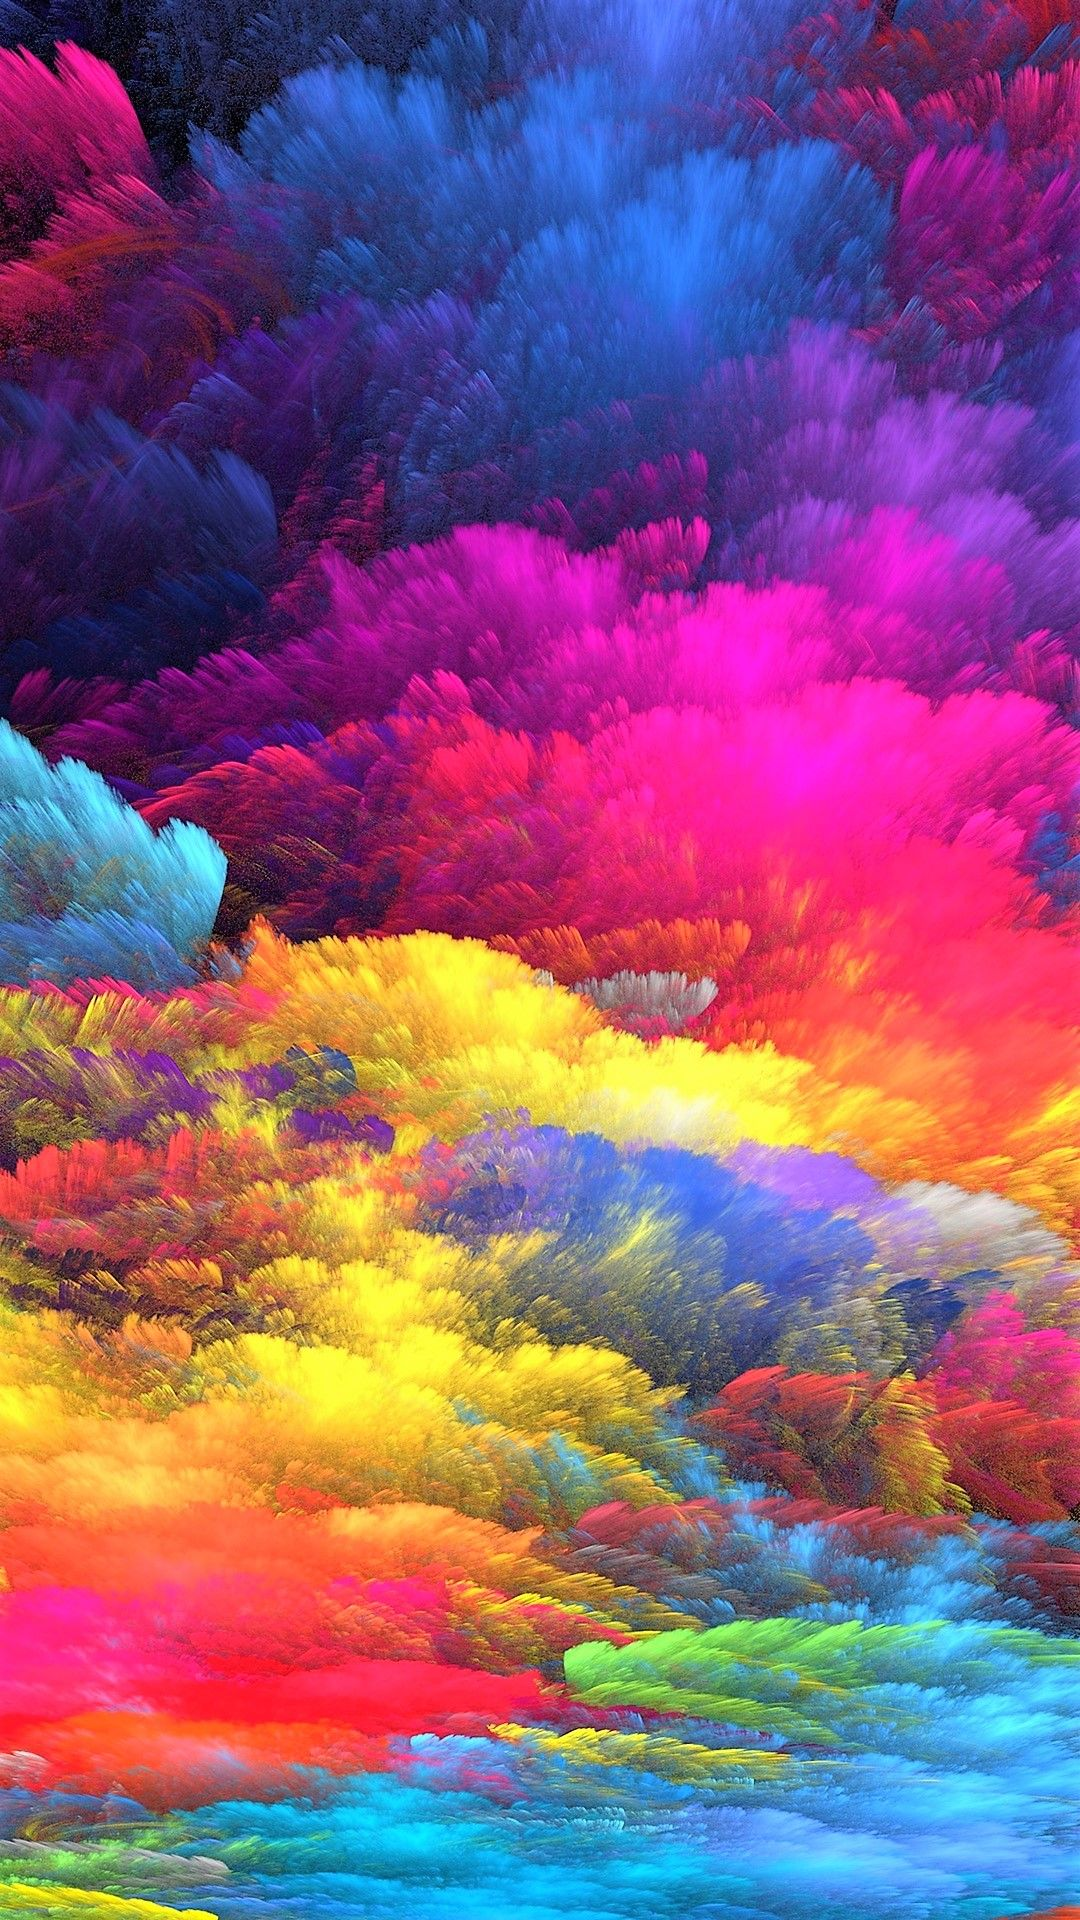 Color Explosion Apple iPhone 5s hd wallpapers available